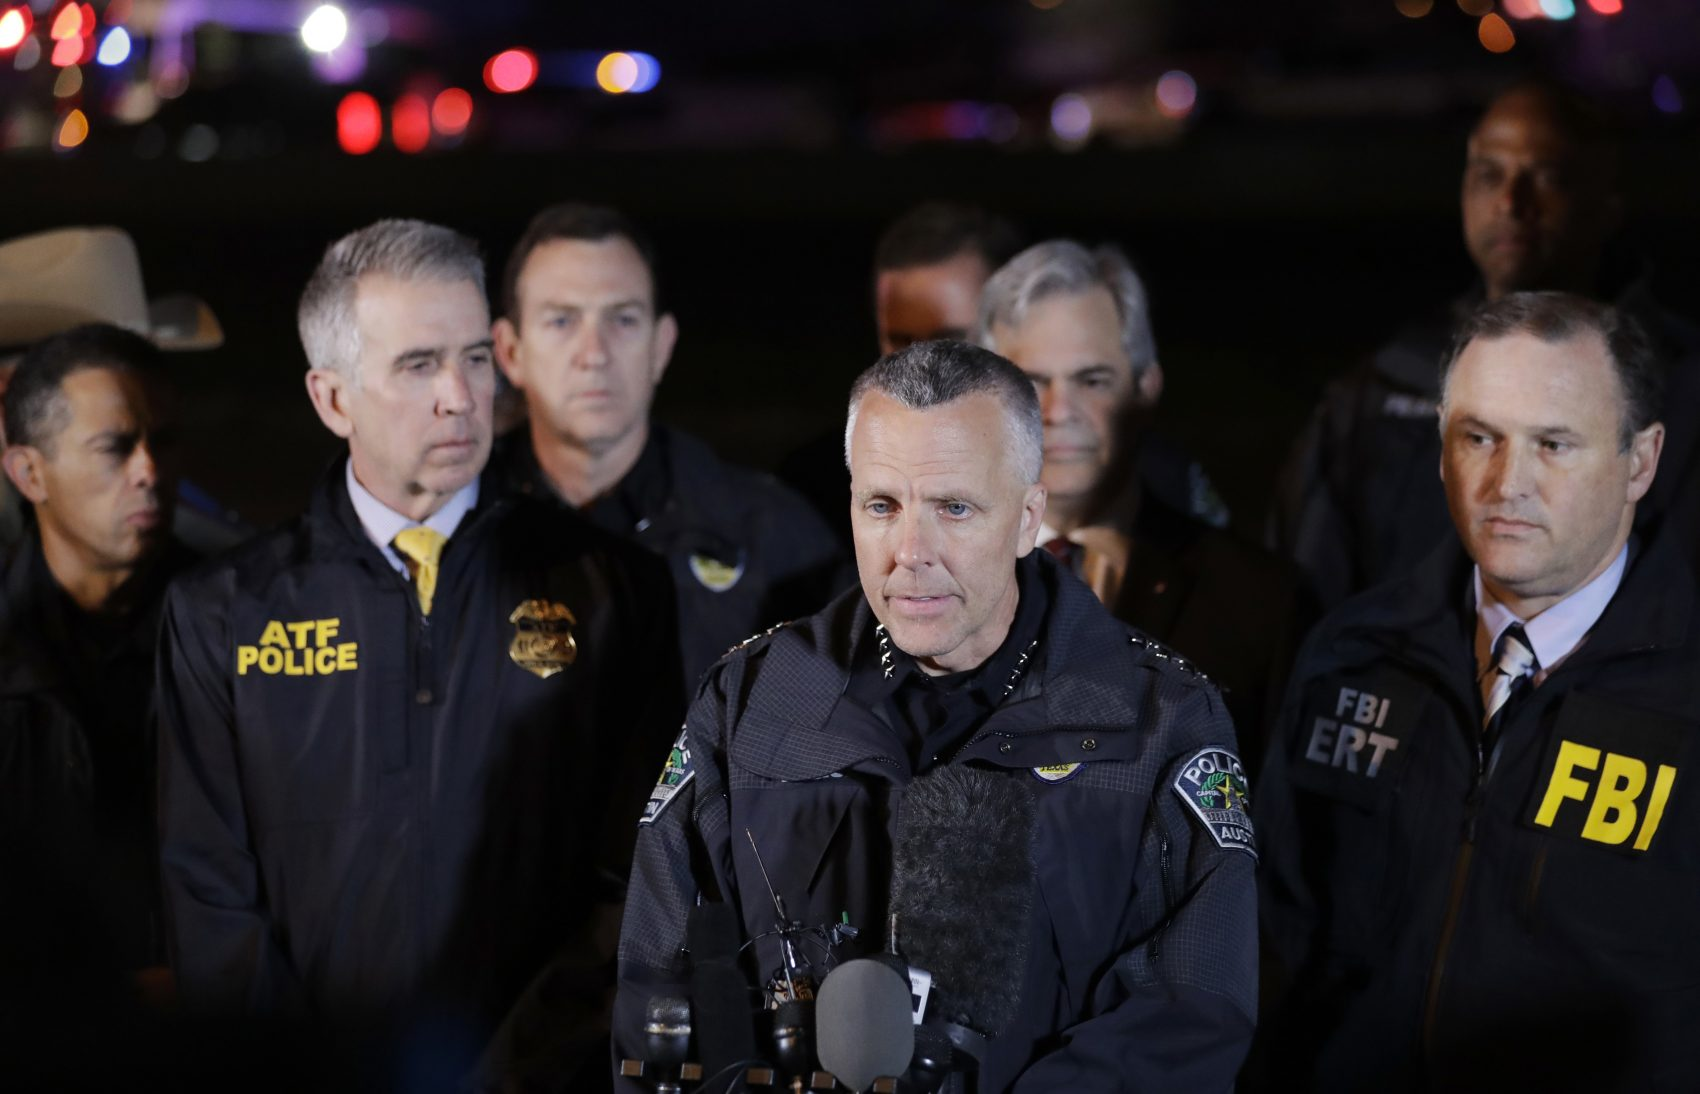 Austin Police Chief Brian Manley, center, stands with other members of law enforcement as he briefs the media, Wednesday, March 21, 2018, in the Austin suburb of Round Rock, Texas. The apparent suspect in a spate of bombing attacks that have terrorized Austin over the past month blew himself up with an explosive device as authorities closed in, the police said early Wednesday. (AP Photo/Eric Gay)